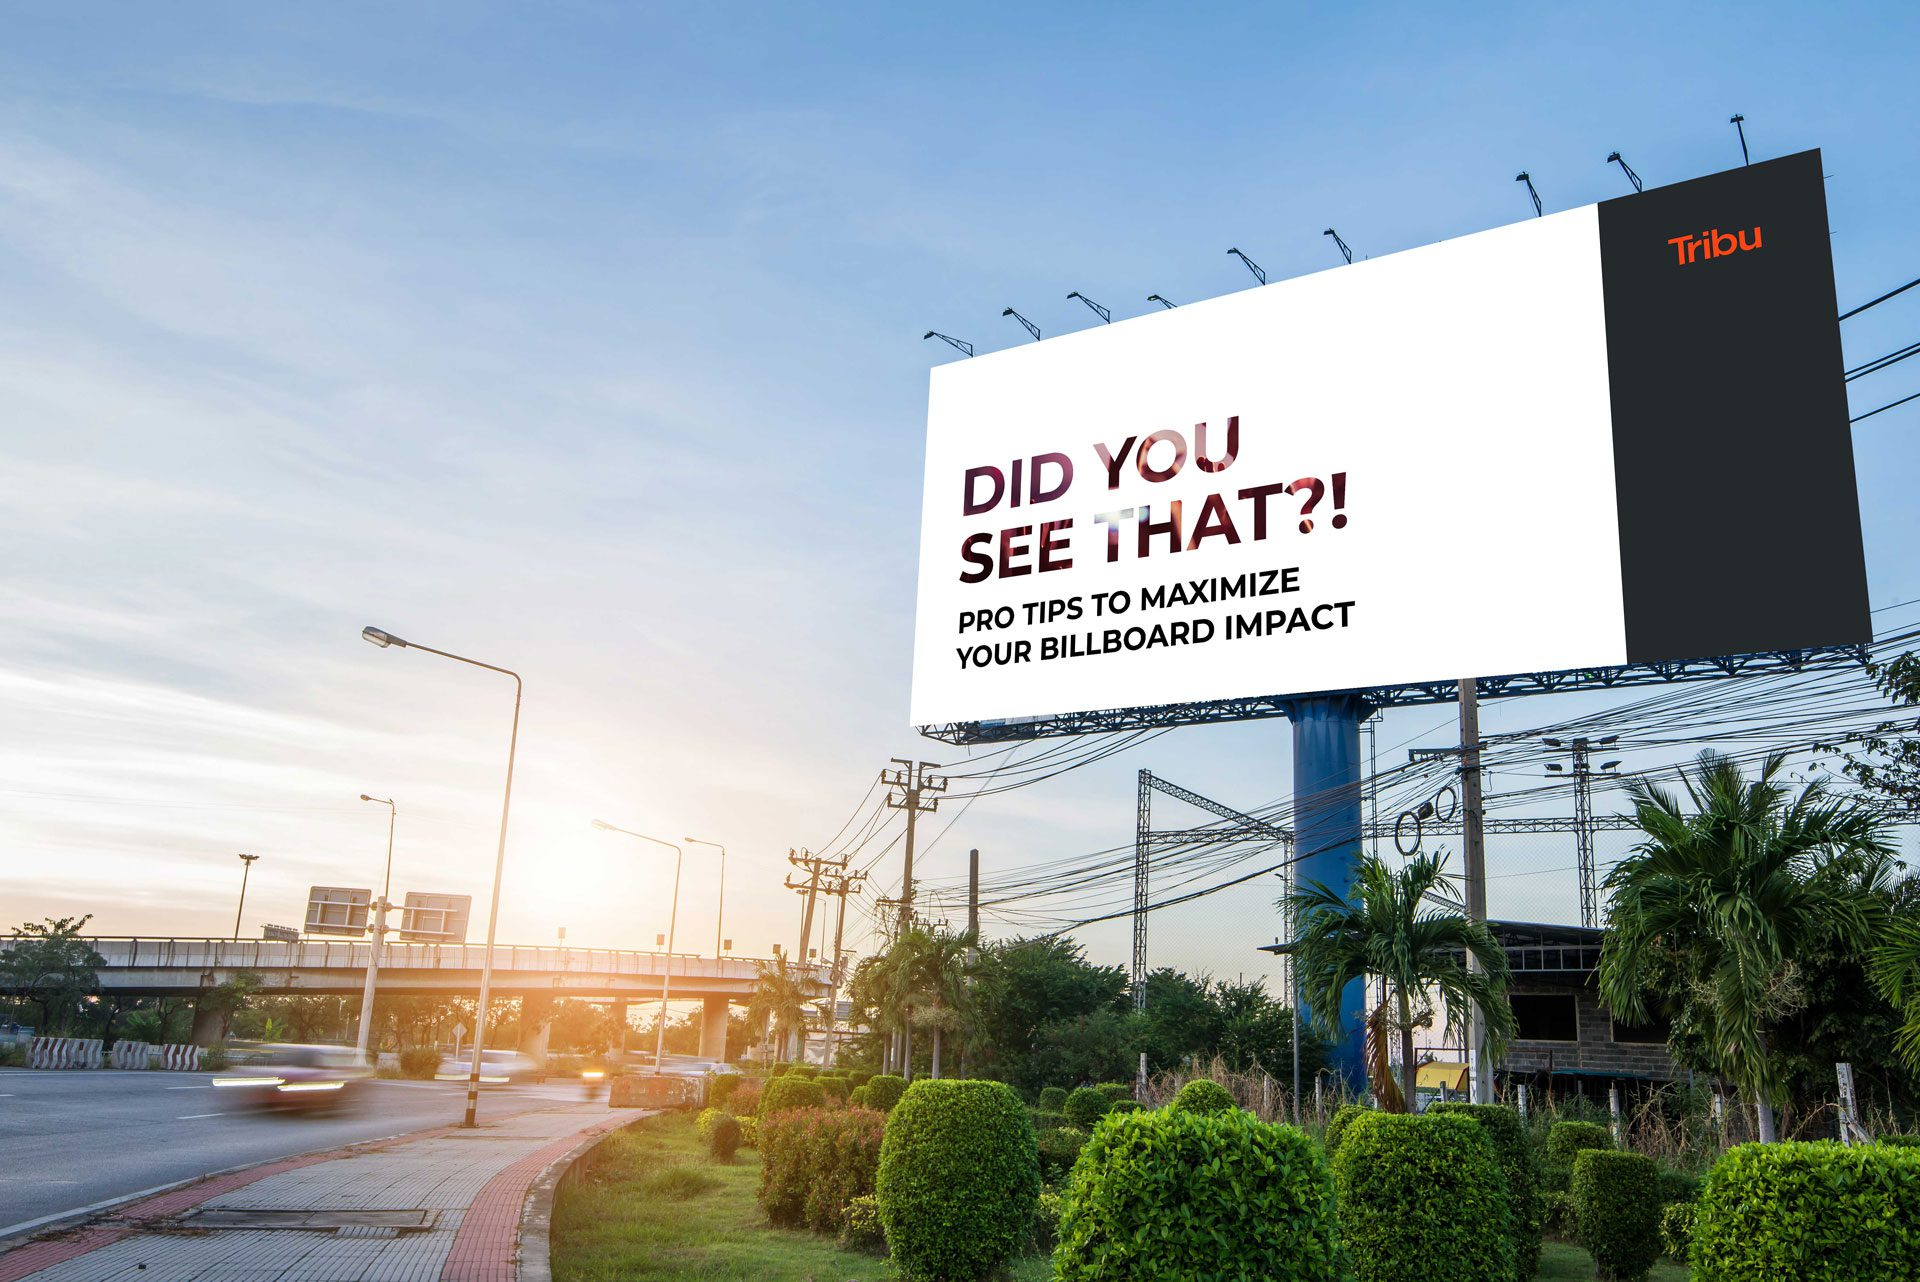 Did you see that?! Pro tips to maximize your Billboard impact